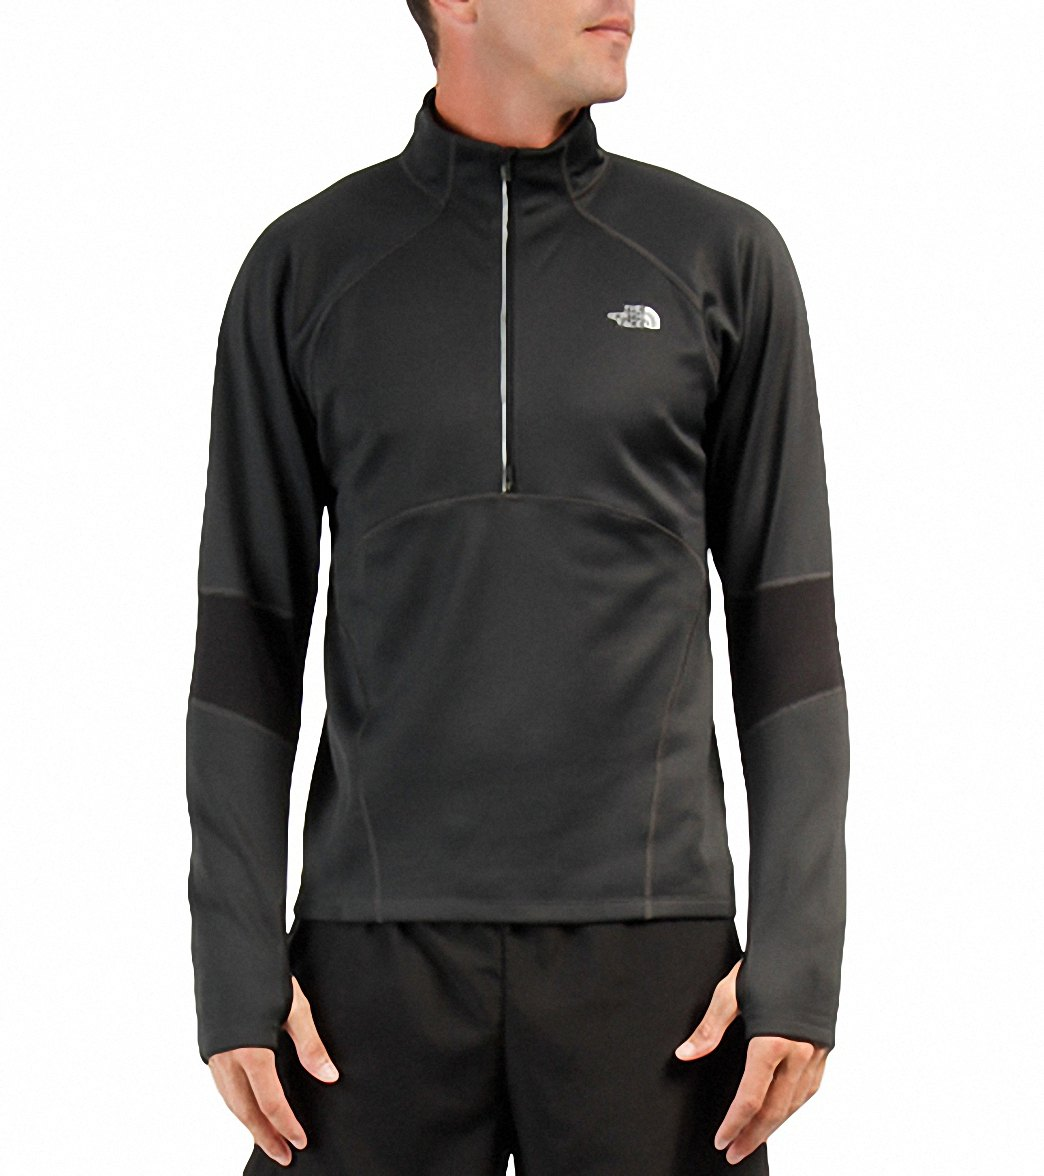 9a17d094f The North Face Men's Momentum Thermal Running 1u002F2 Zip